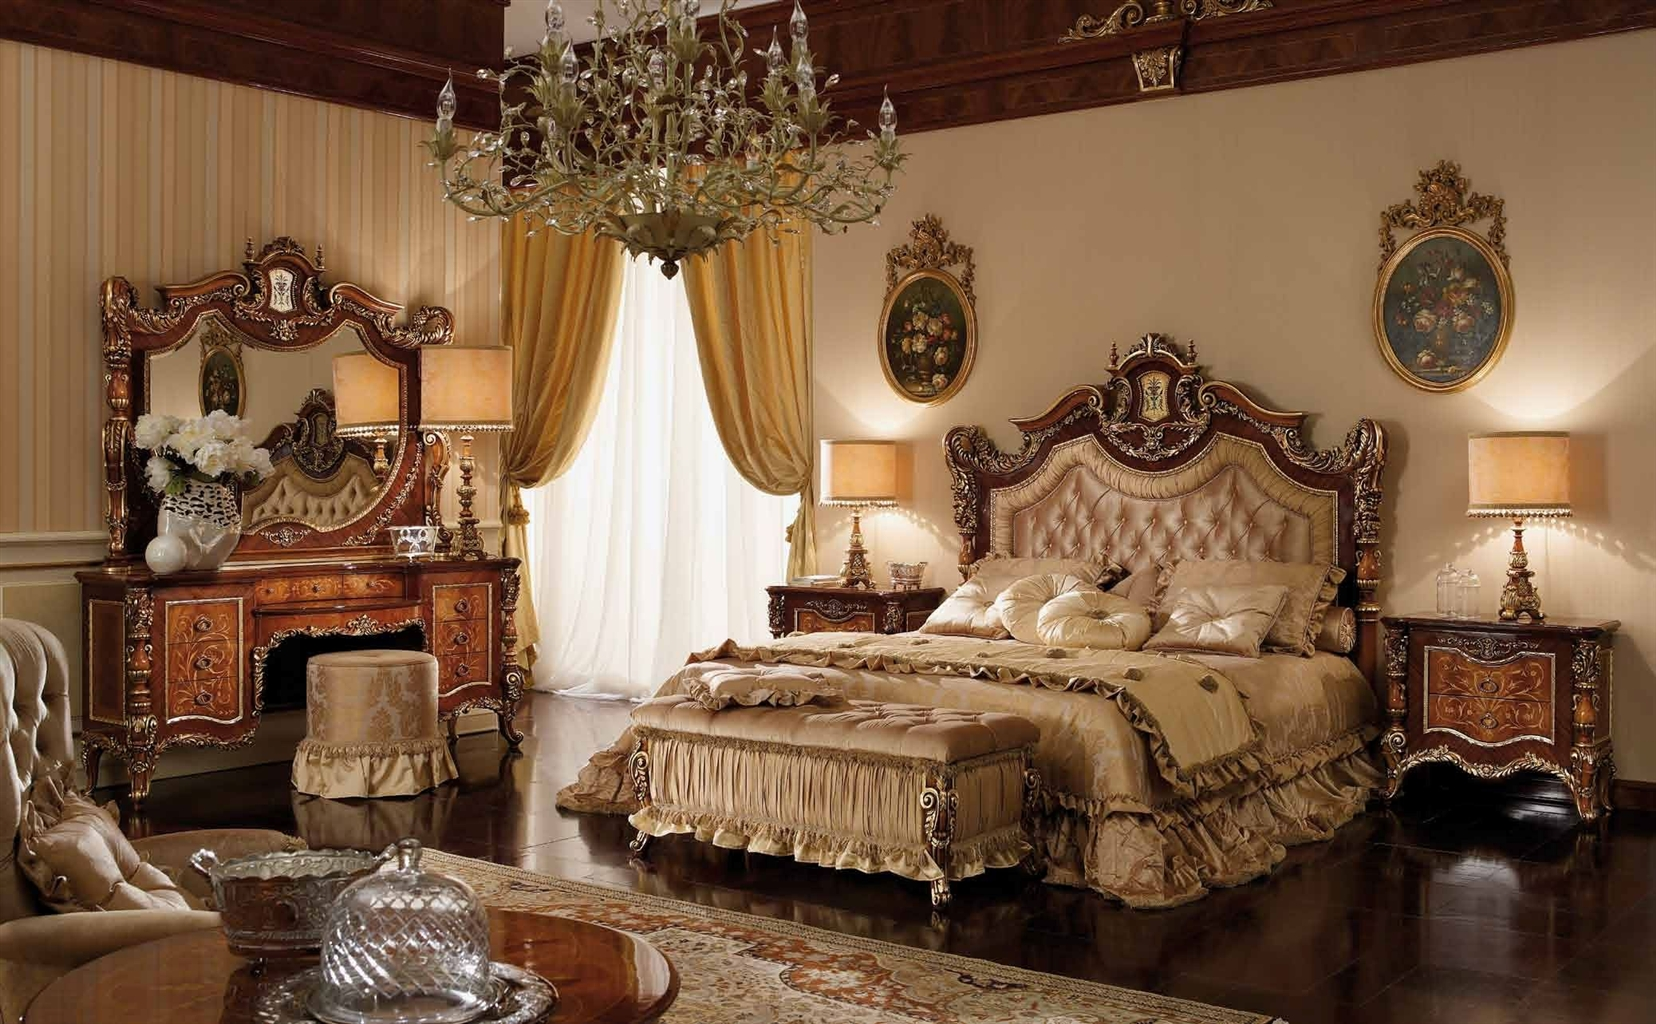 Exceptional master bedroom set with a tufted headboard home furnishings luxury furniture No dresser in master bedroom